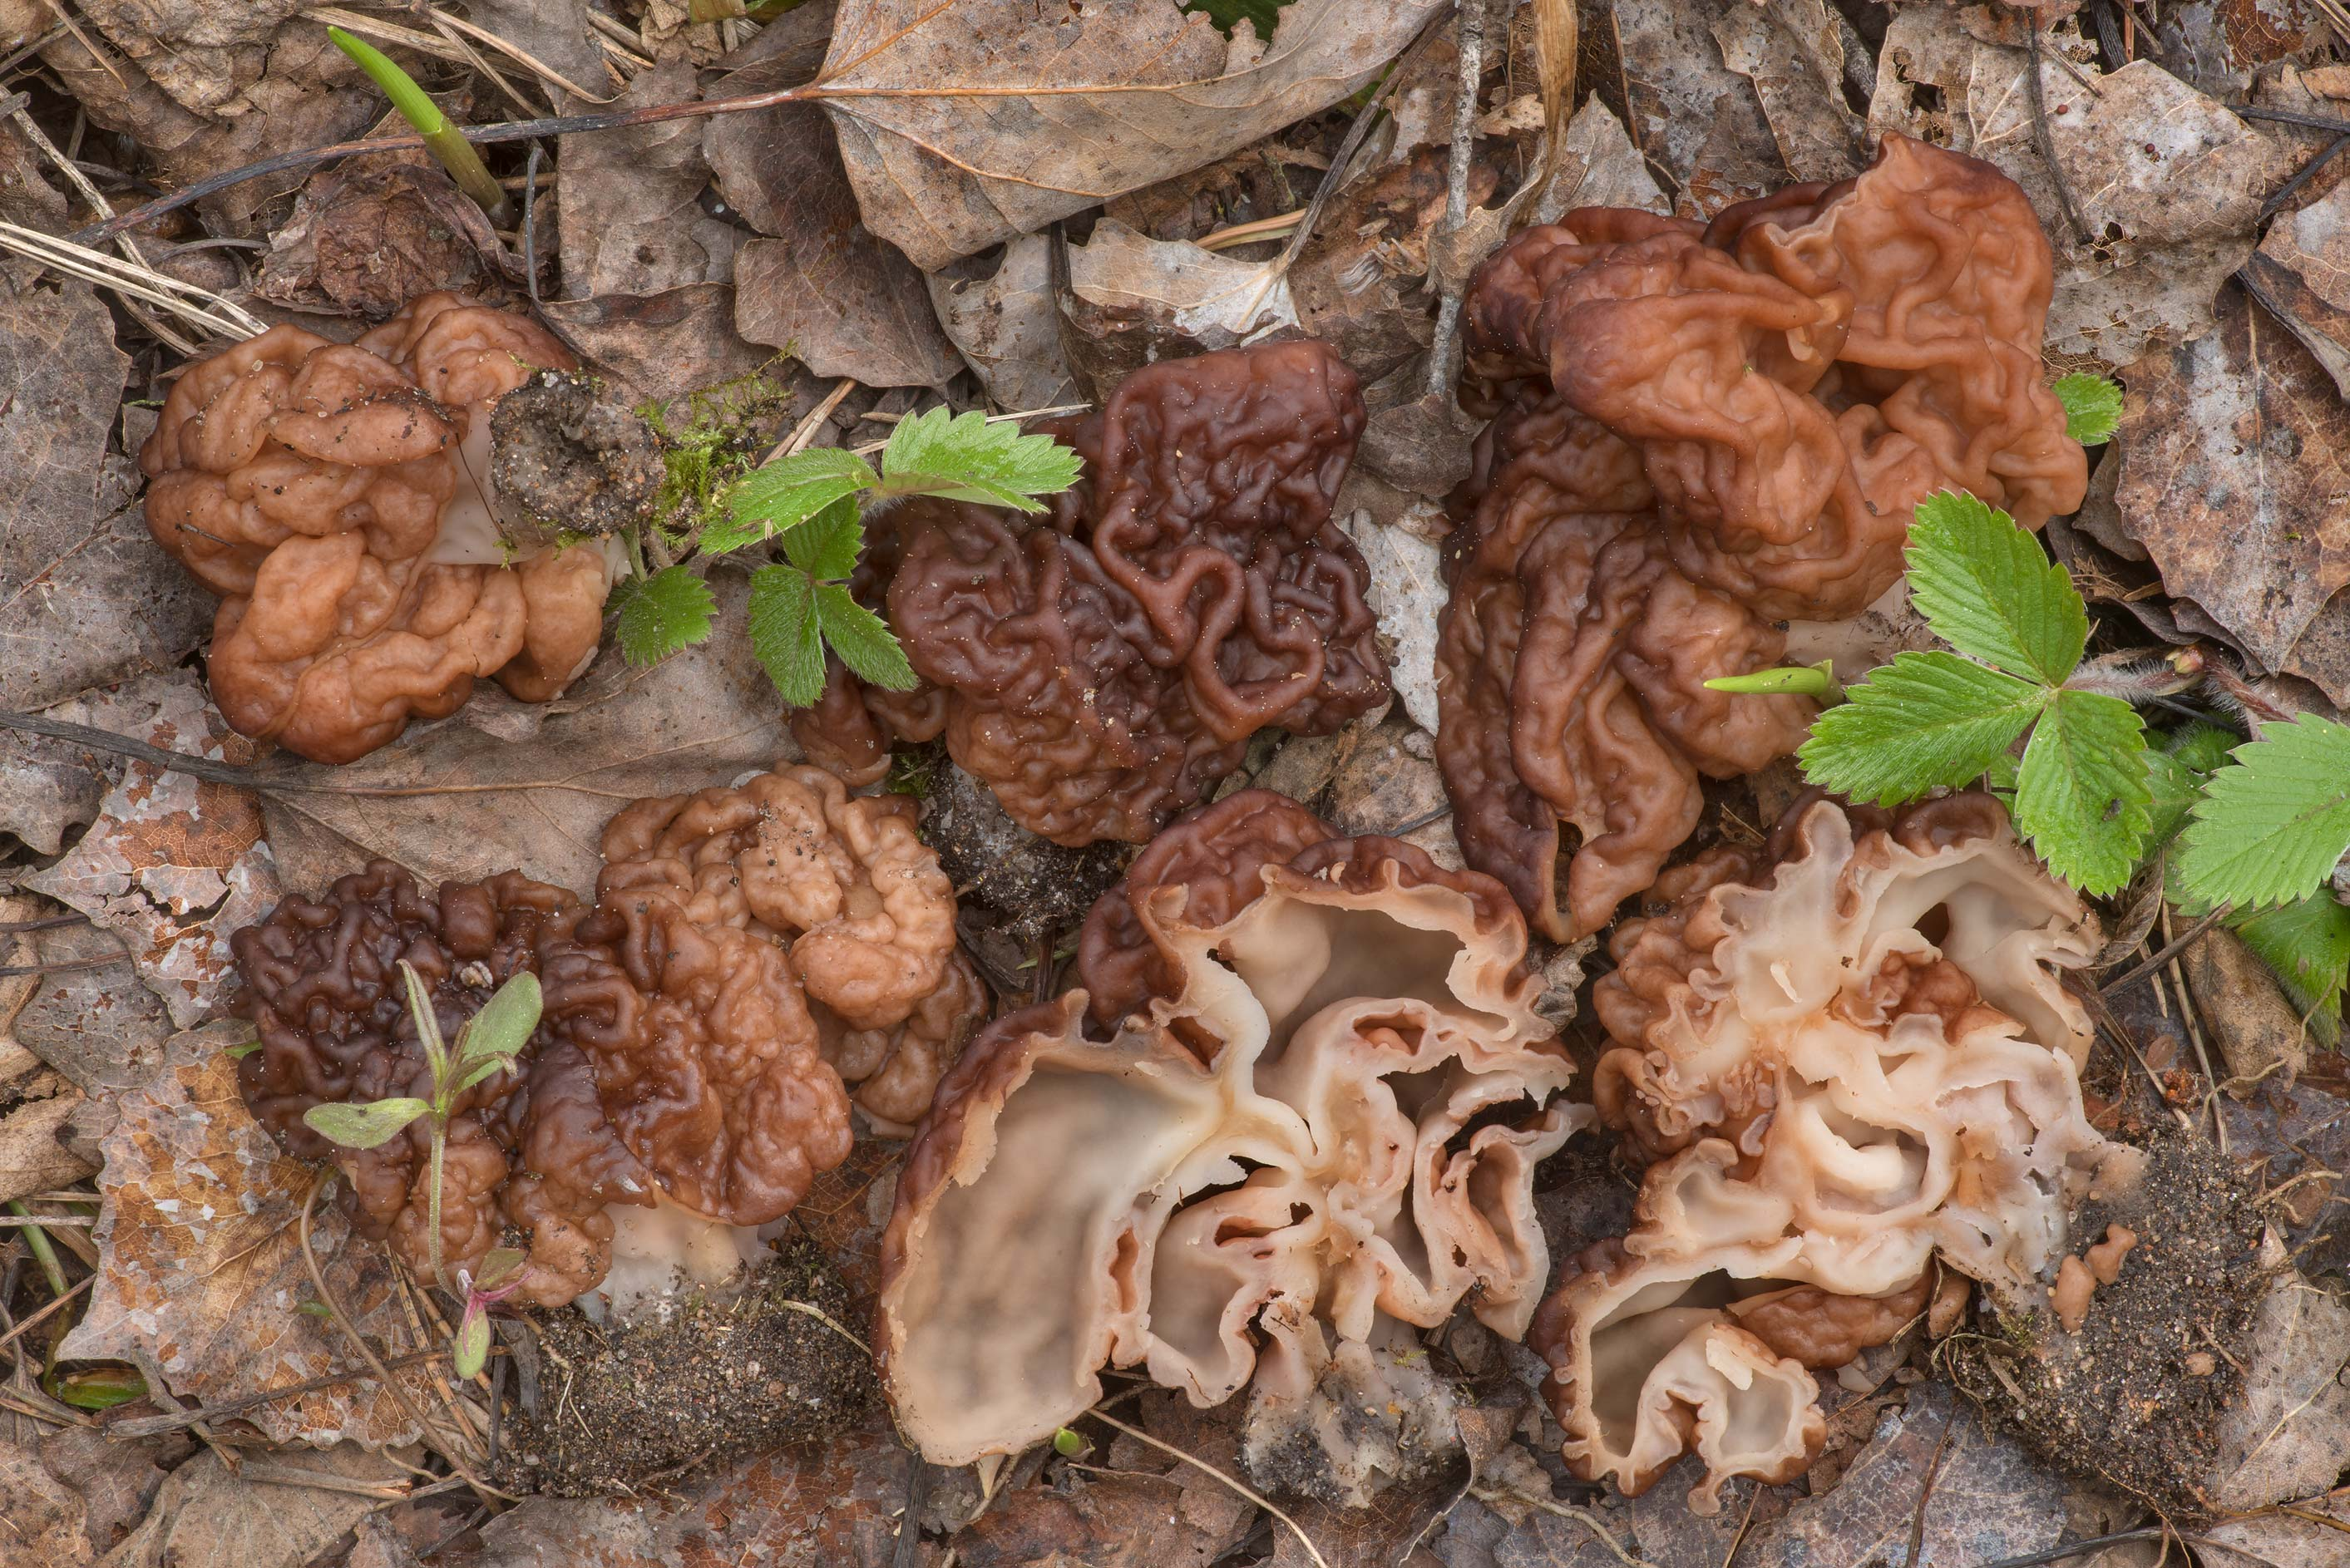 Group of false morel mushrooms (Gyromitra...north-west from St.Petersburg, Russia